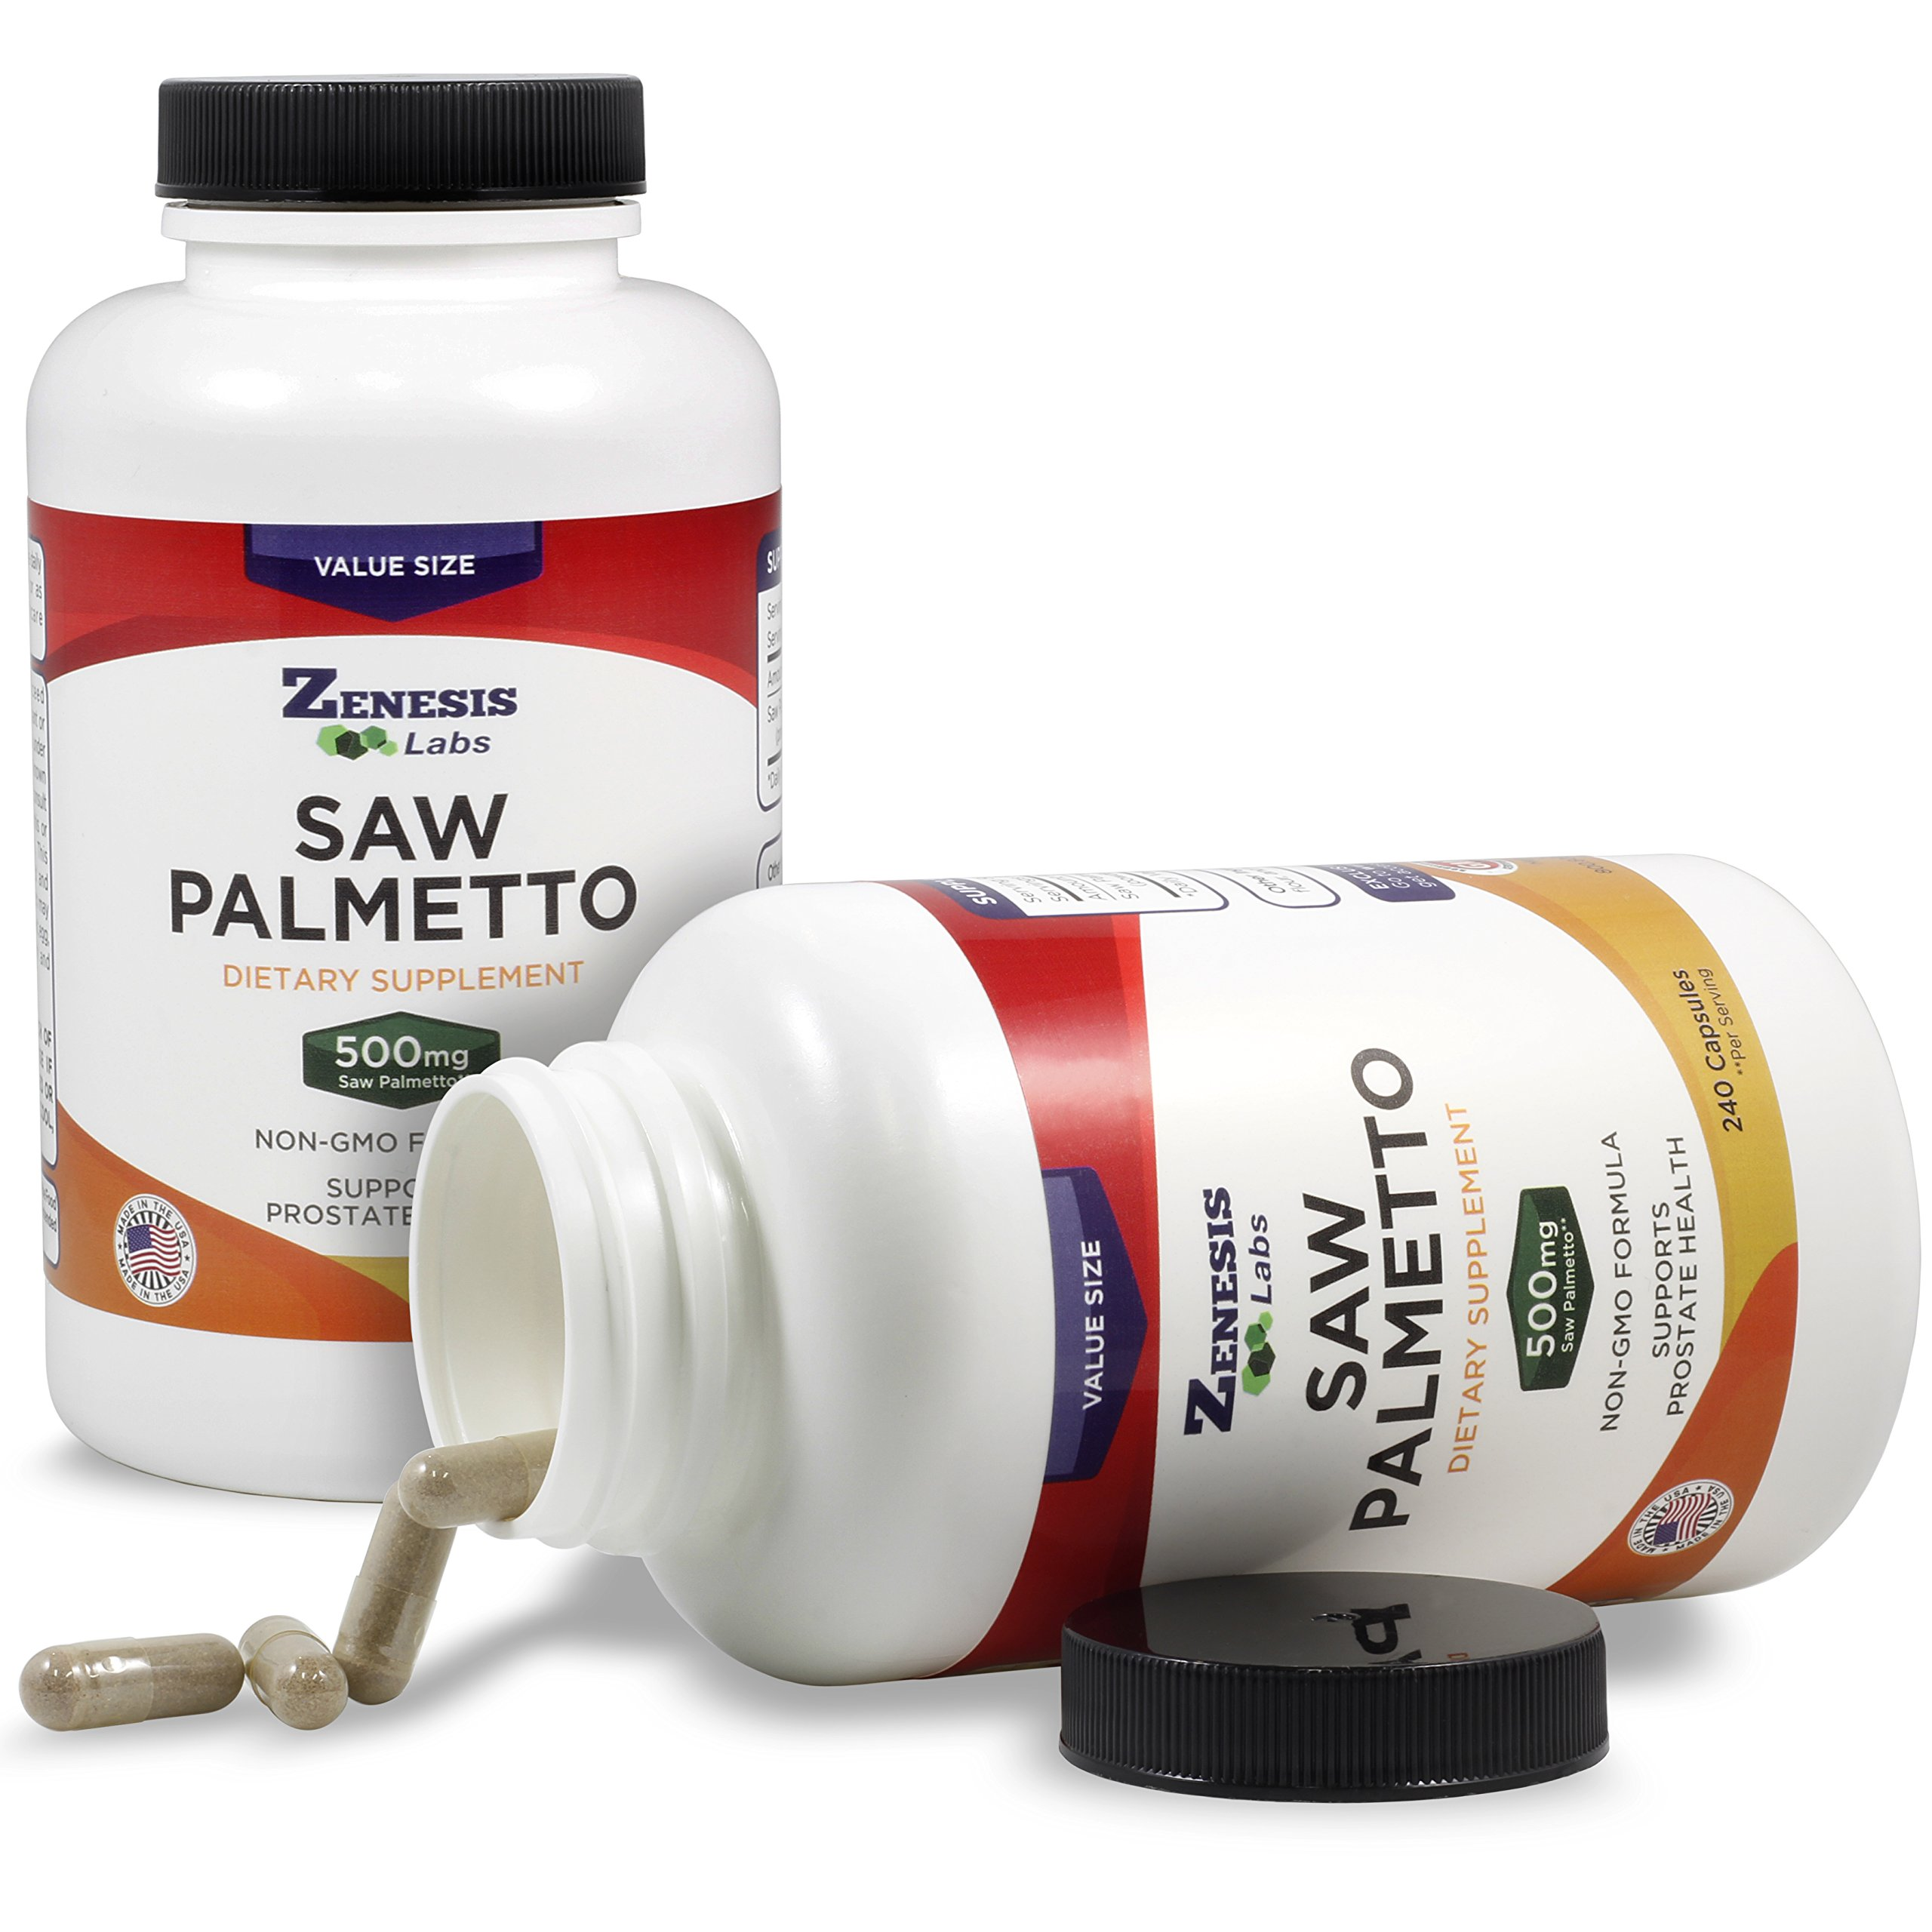 Saw Palmetto Extract - 240 Capsules - 500mg Per Capsule - More Than 200% More Capsules Than